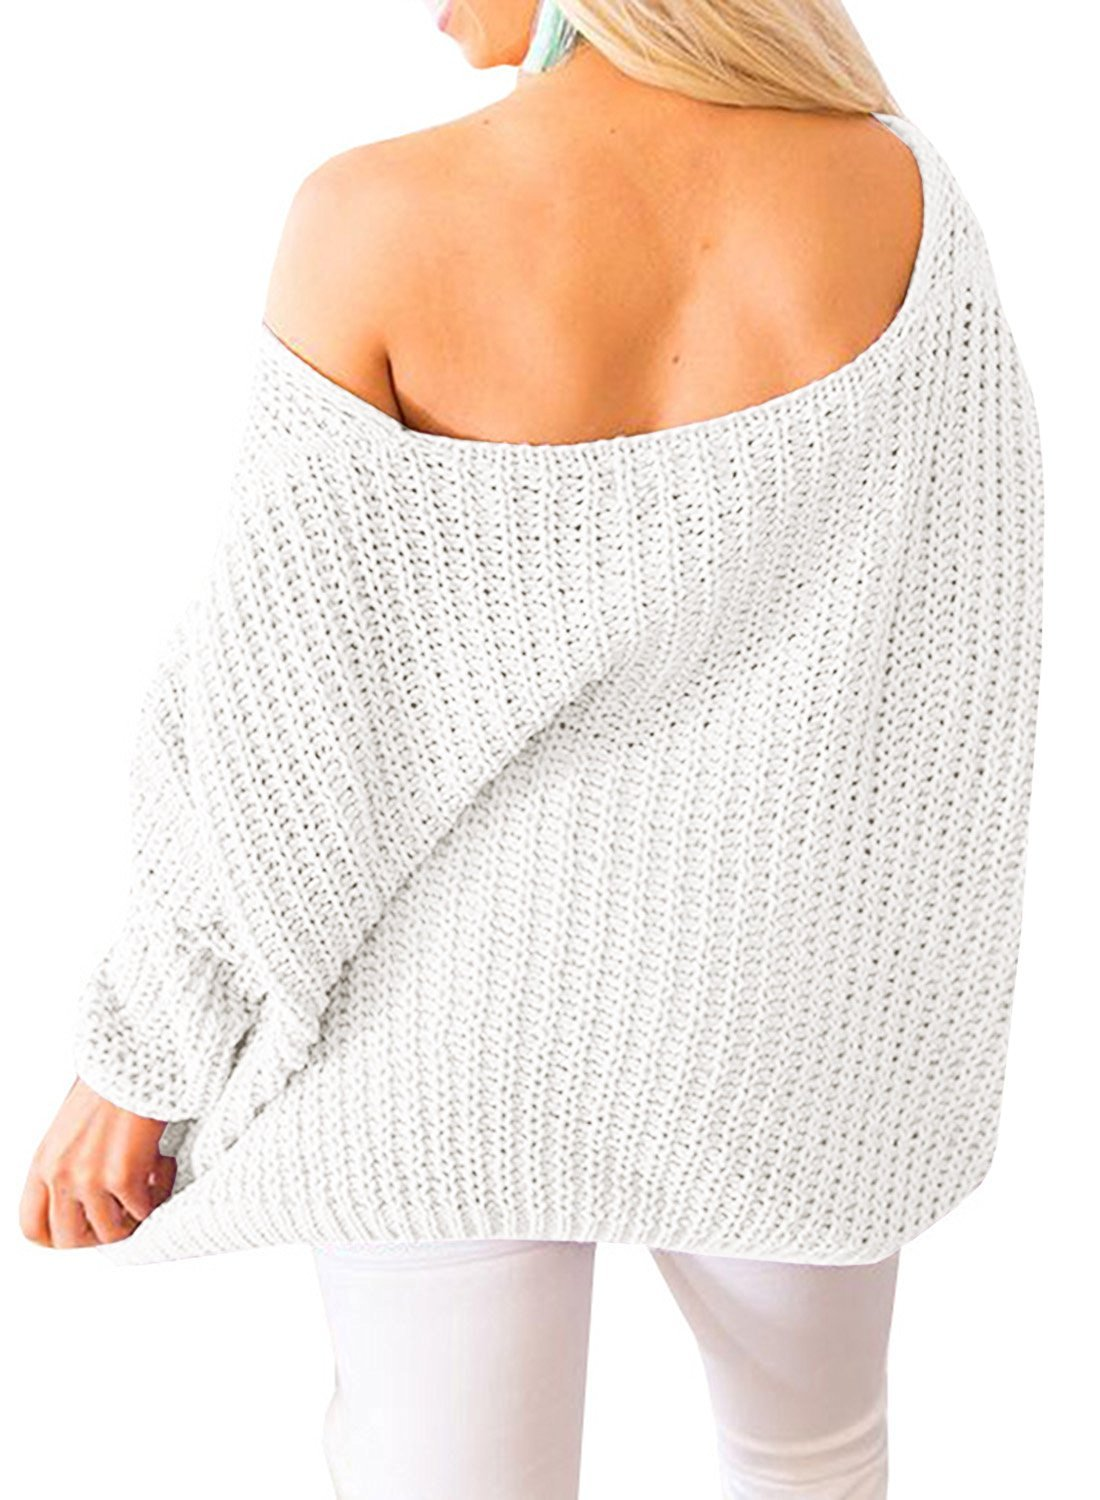 Huiyuzhi Women's Oversized Pullover Sweaters Off Shoulder V Neck Batwing Sleeve Loose Knit Chunky Sweatshirt Jumper Tops (M, White) by Huiyuzhi (Image #3)